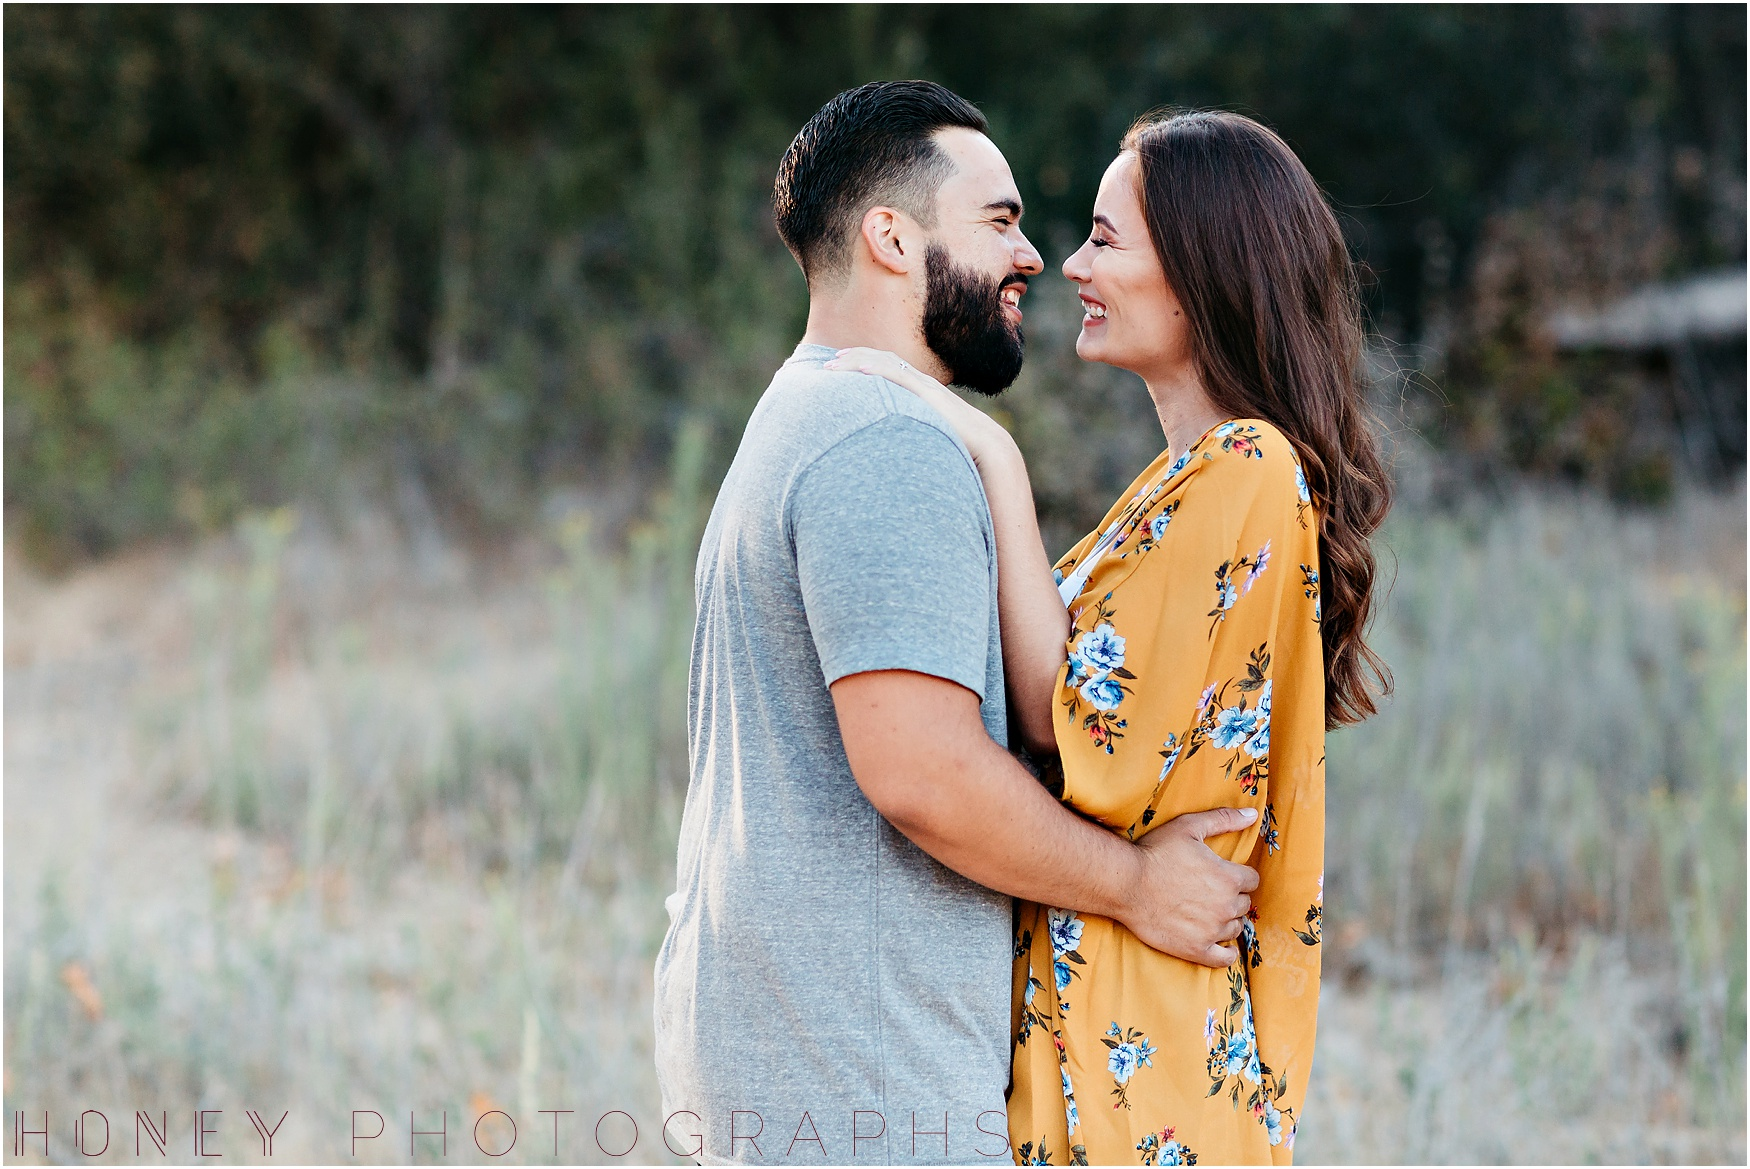 marian_bear_sunset_woods_san_diego_engagement001.jpg